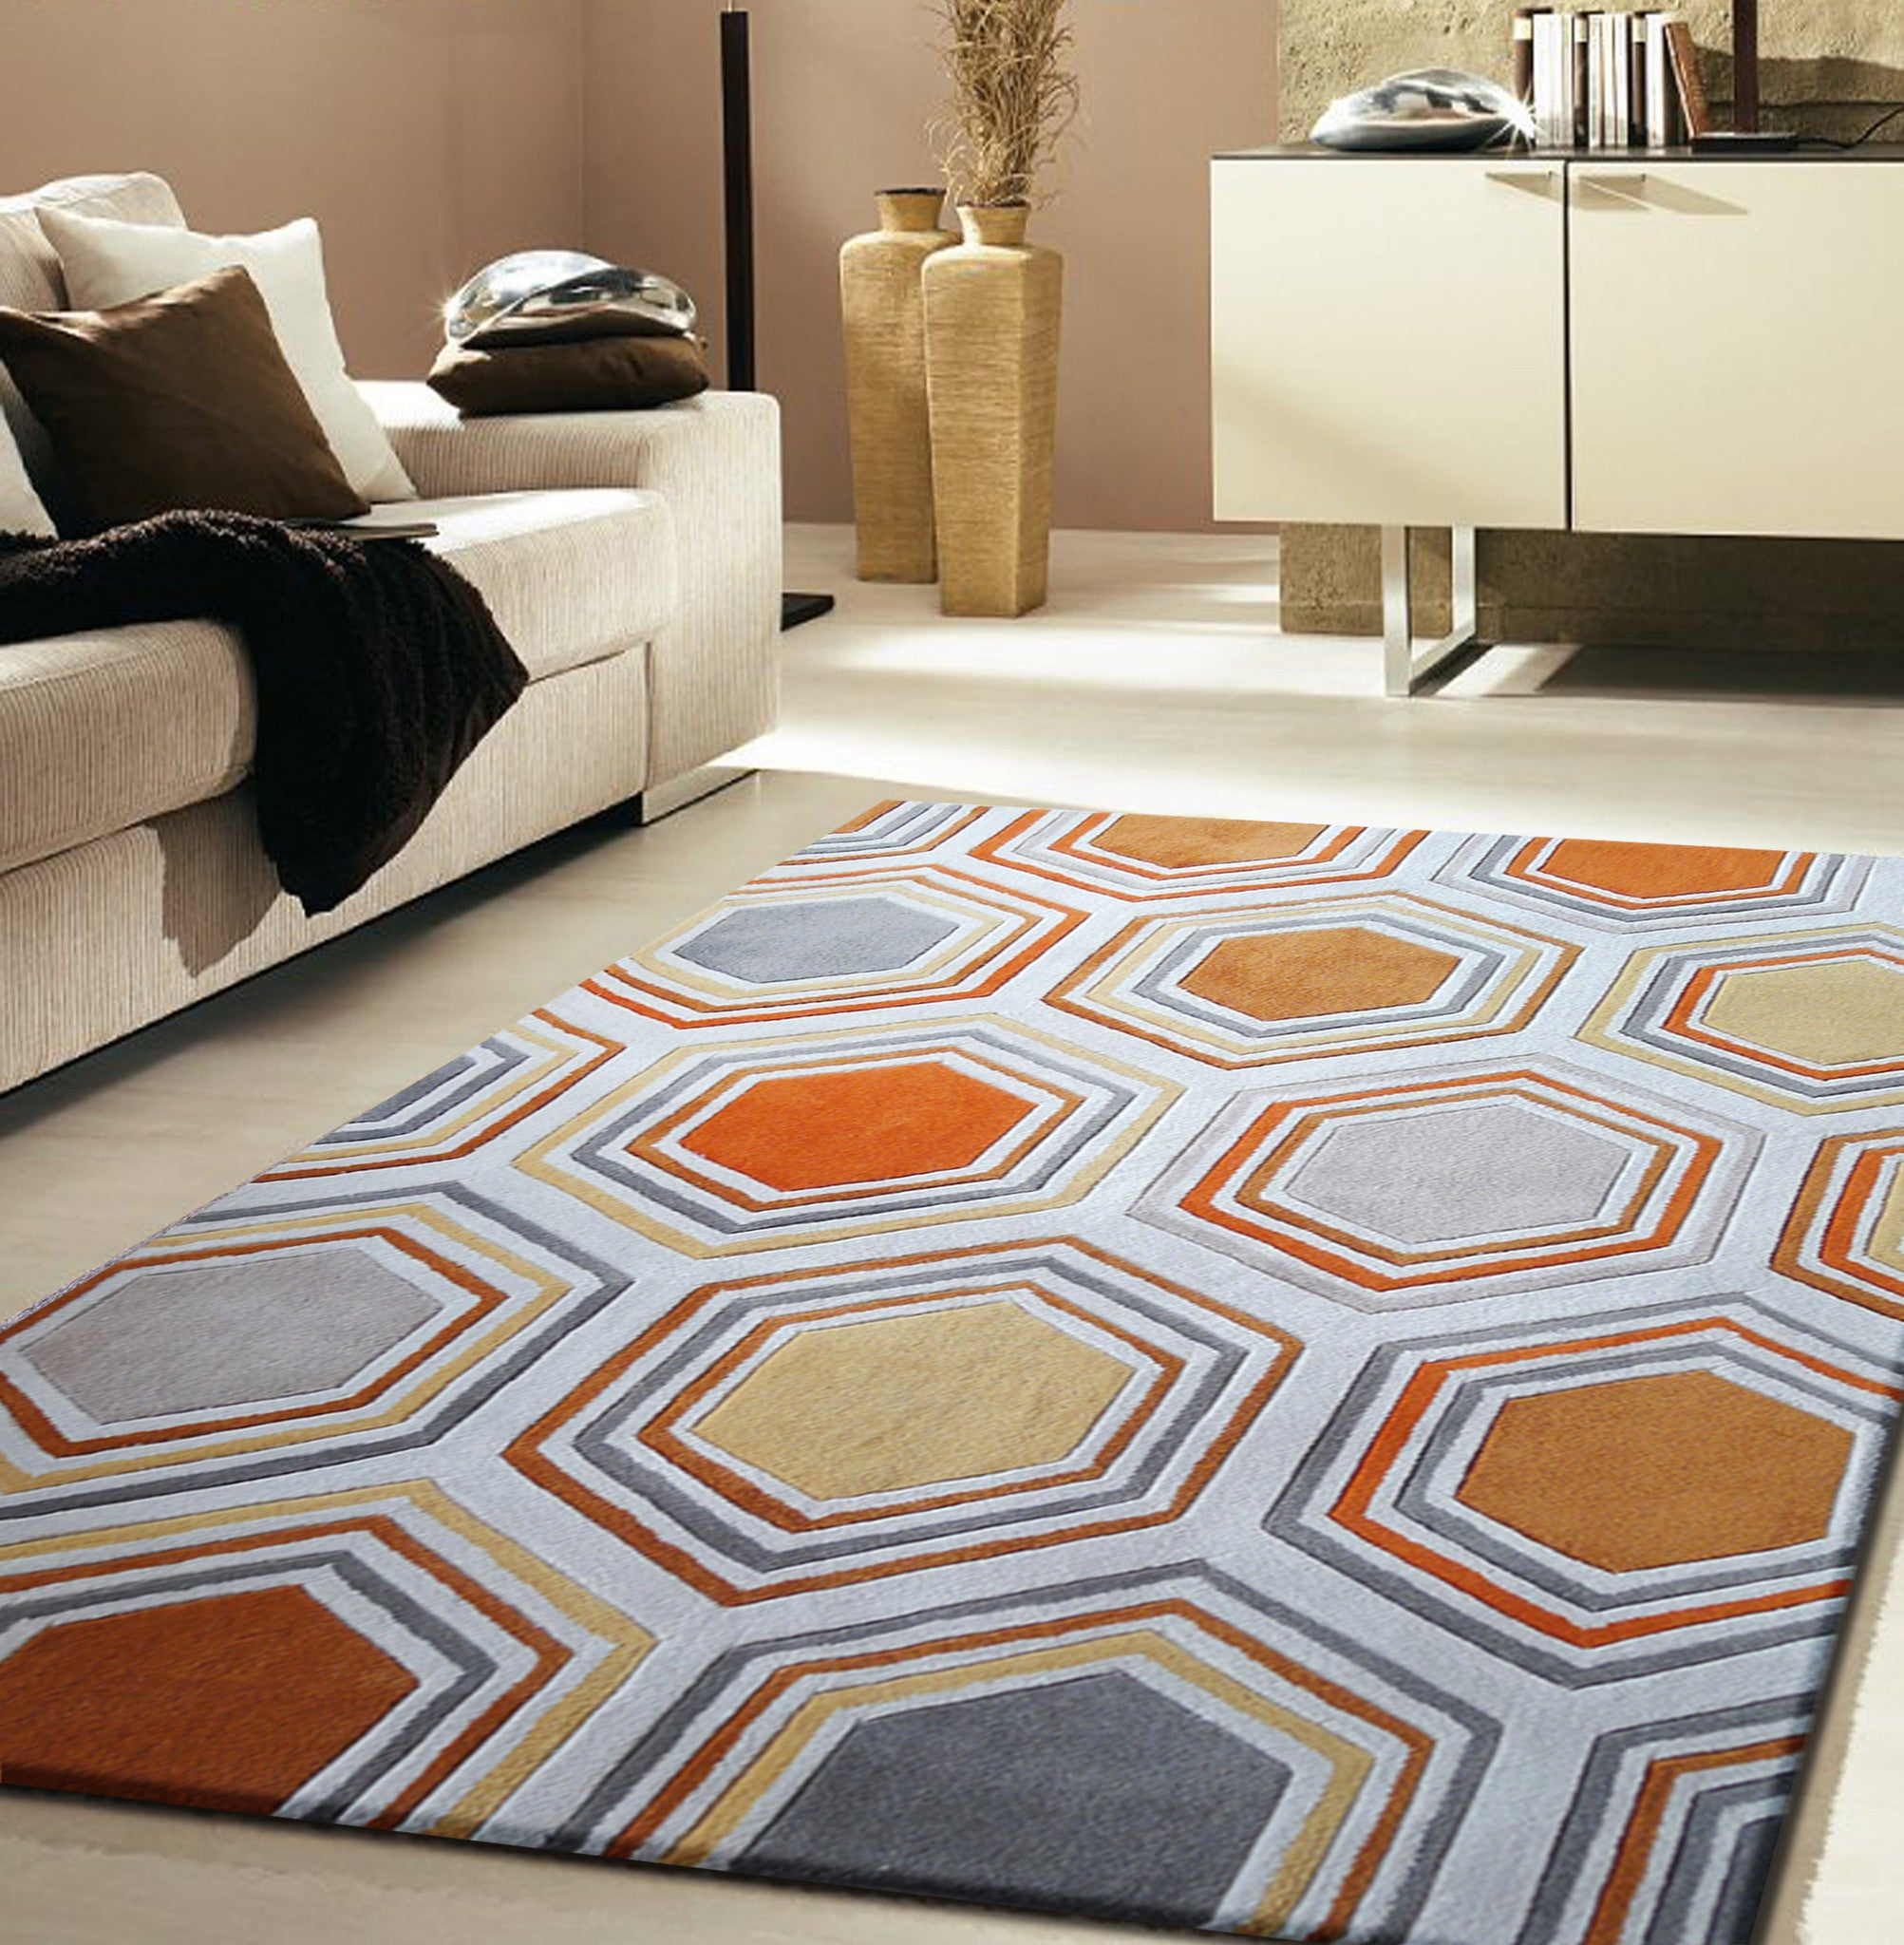 3 Piece Set Elegant Design Orange Grey Area Rug Rug Addiction